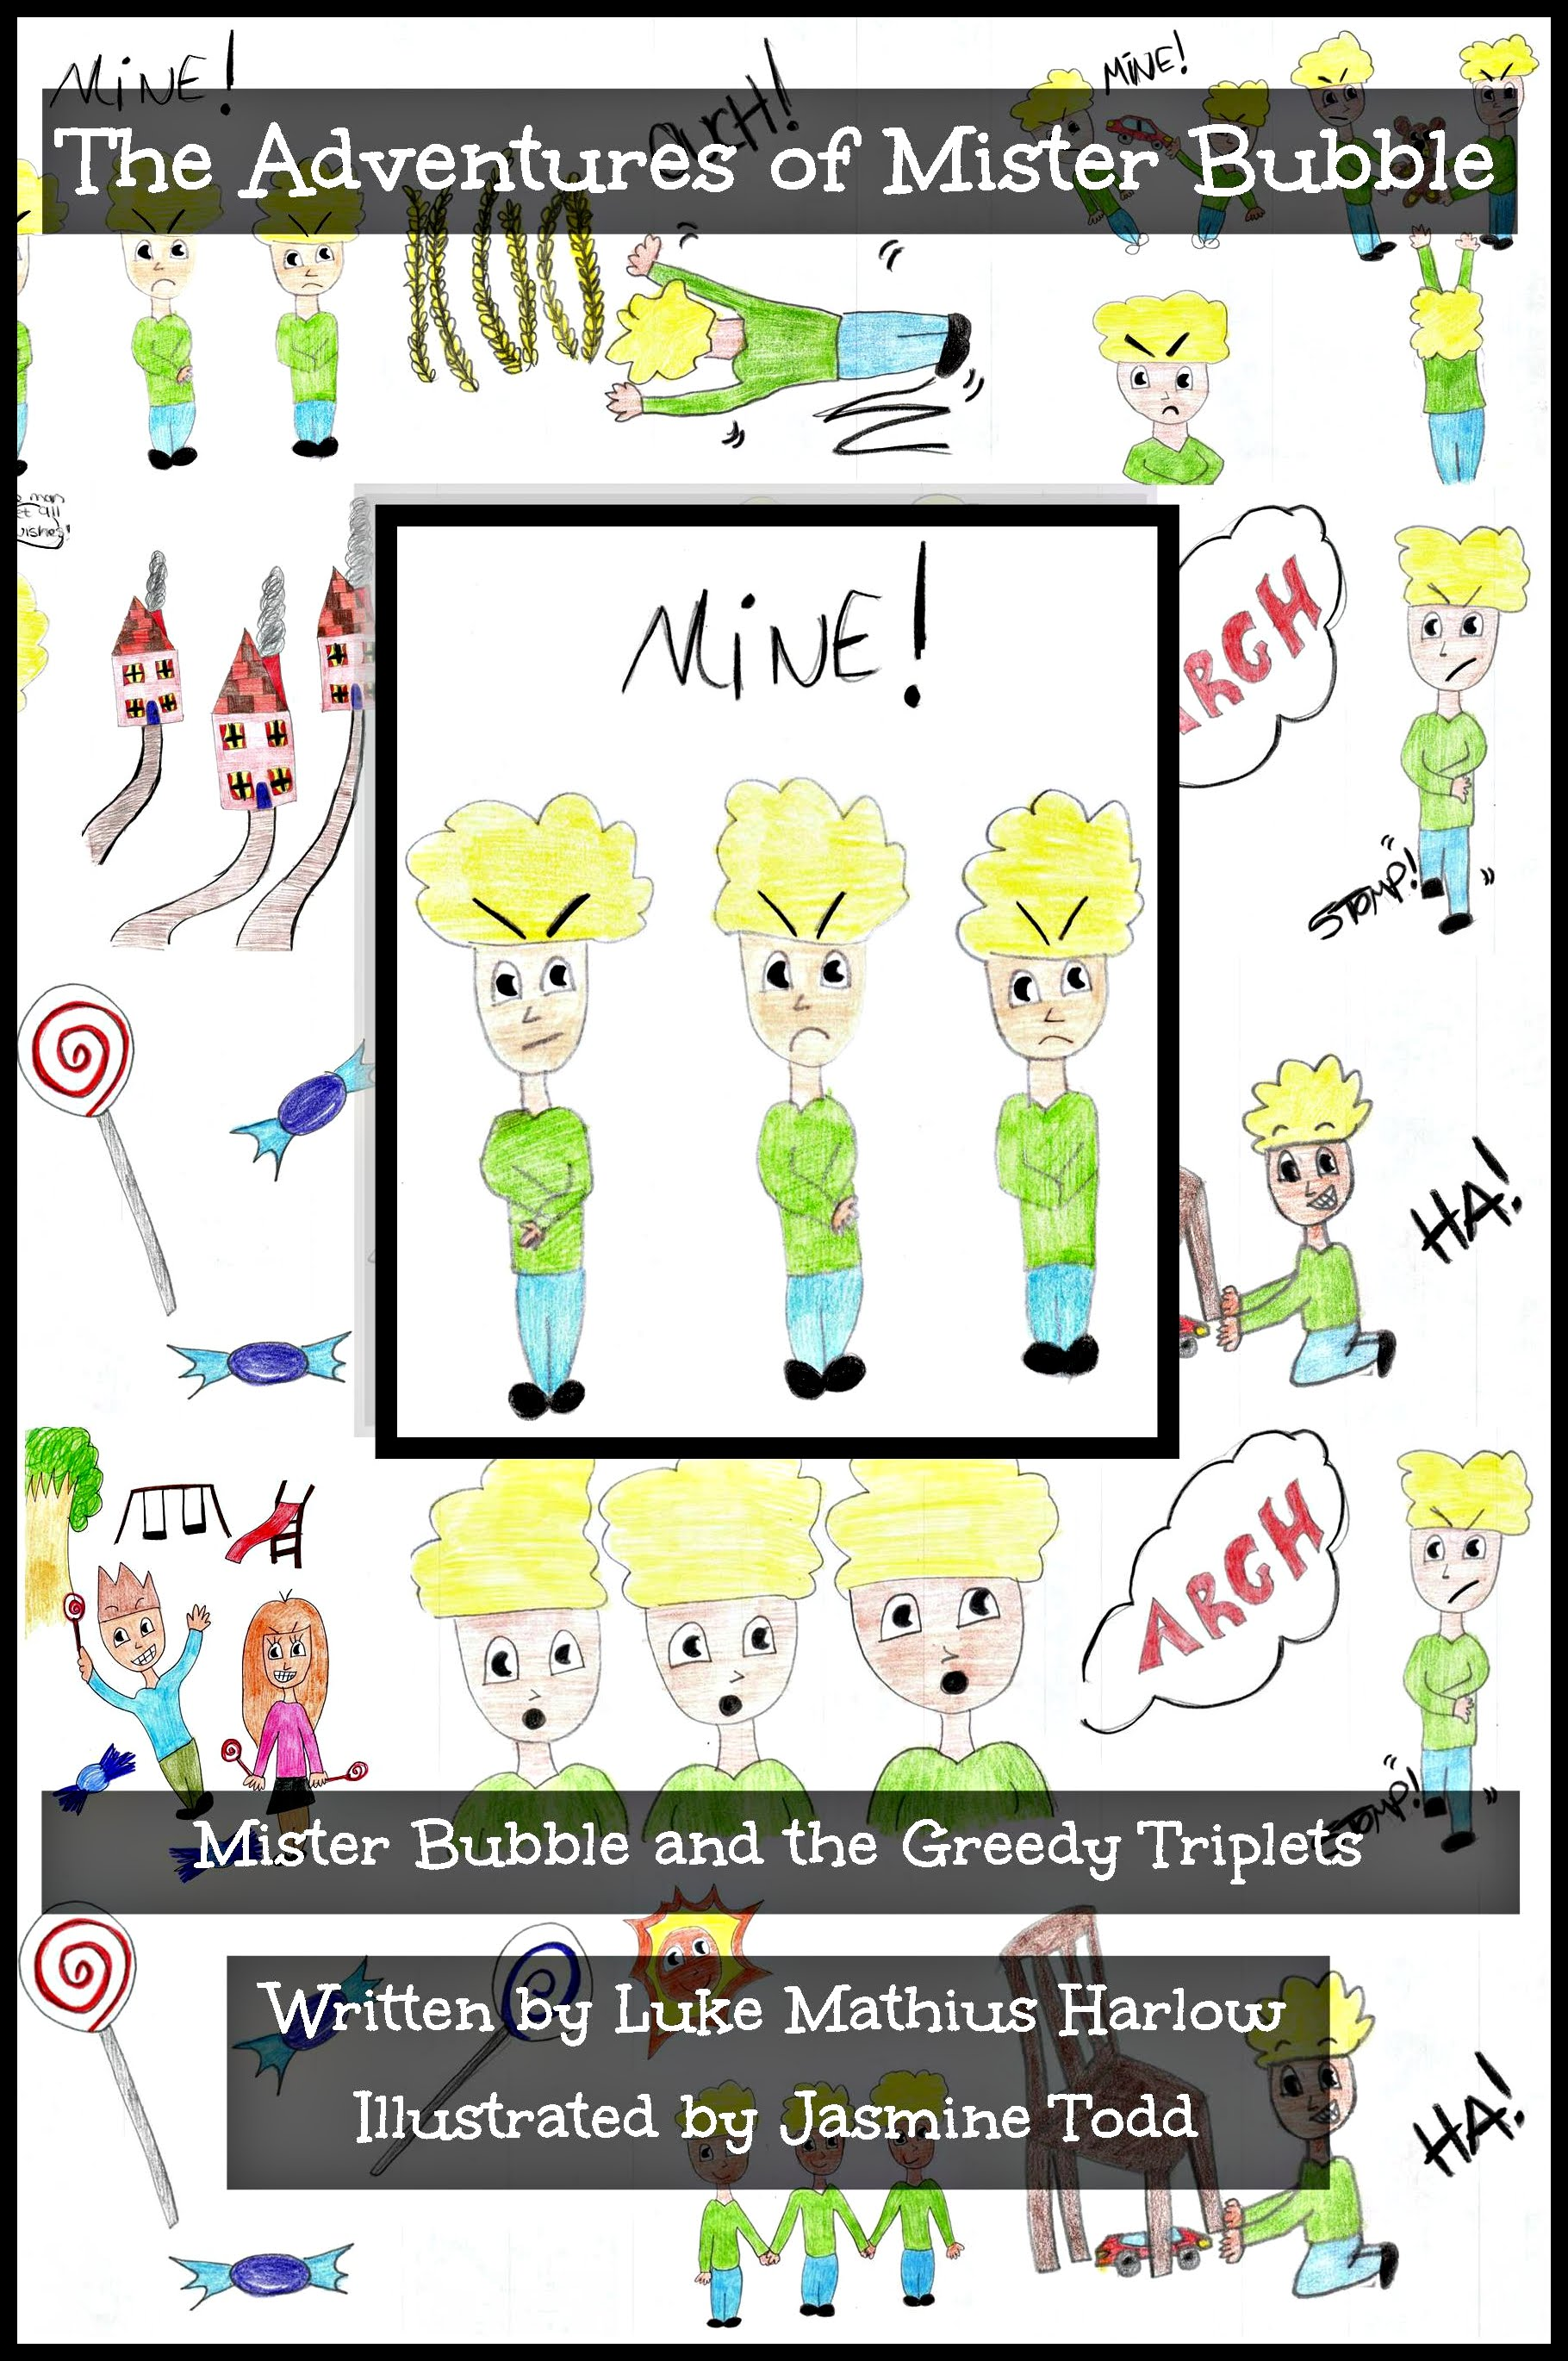 http://www.amazon.co.uk/Adventures-Mister-Bubble-Greedy-Triplets/dp/1517198445/ref=sr_1_8?ie=UTF8&qid=1441449051&sr=8-8&keywords=luke+mathius+harlow